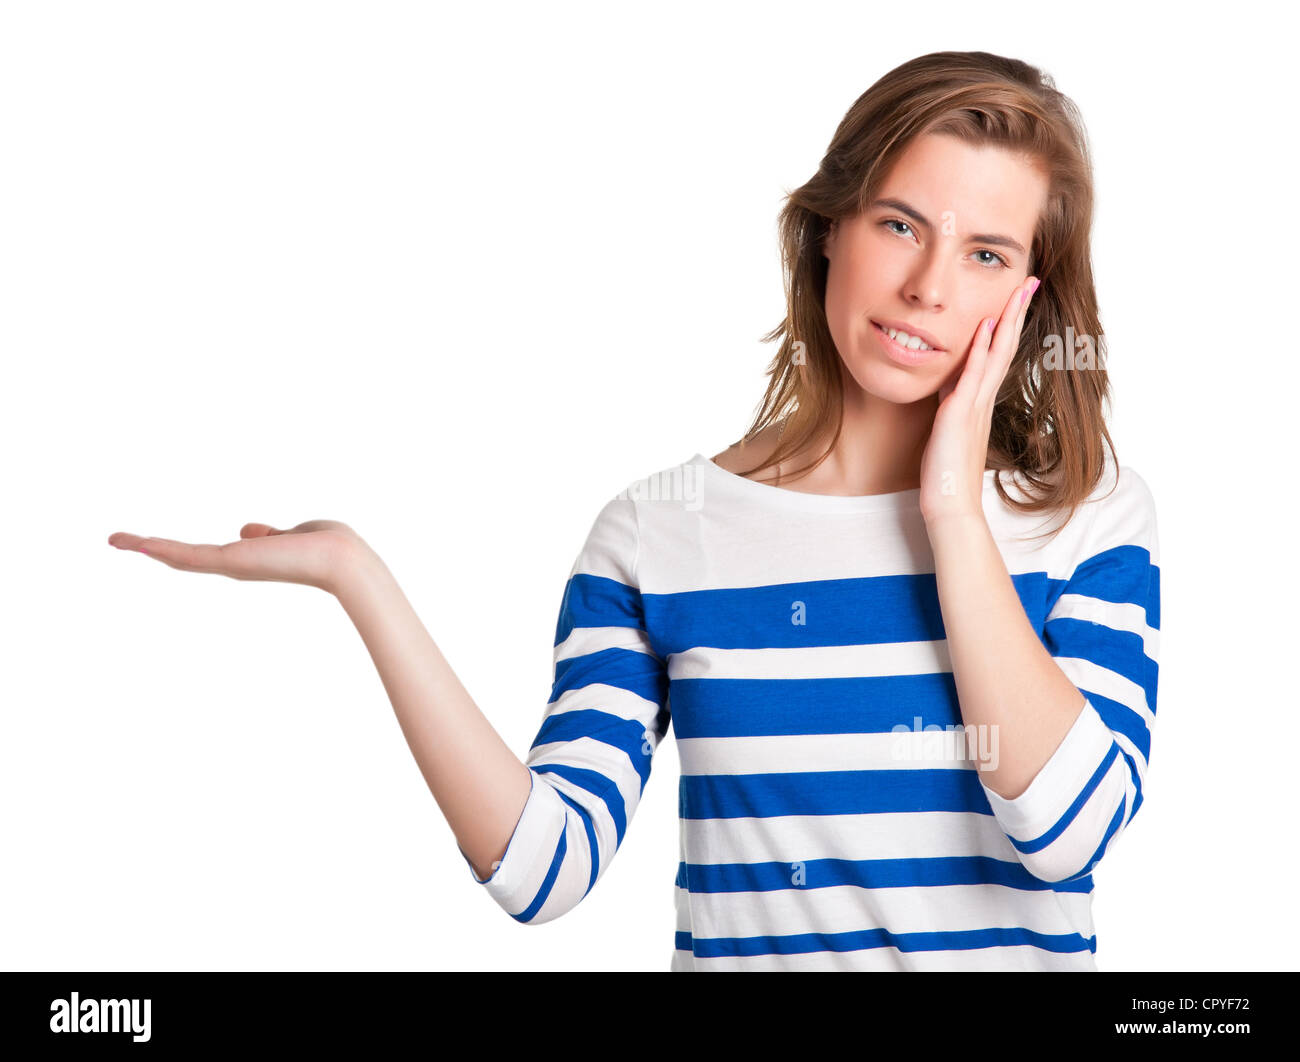 Young woman standing with her hand outstretched, as though she is presenting a product - Stock Image